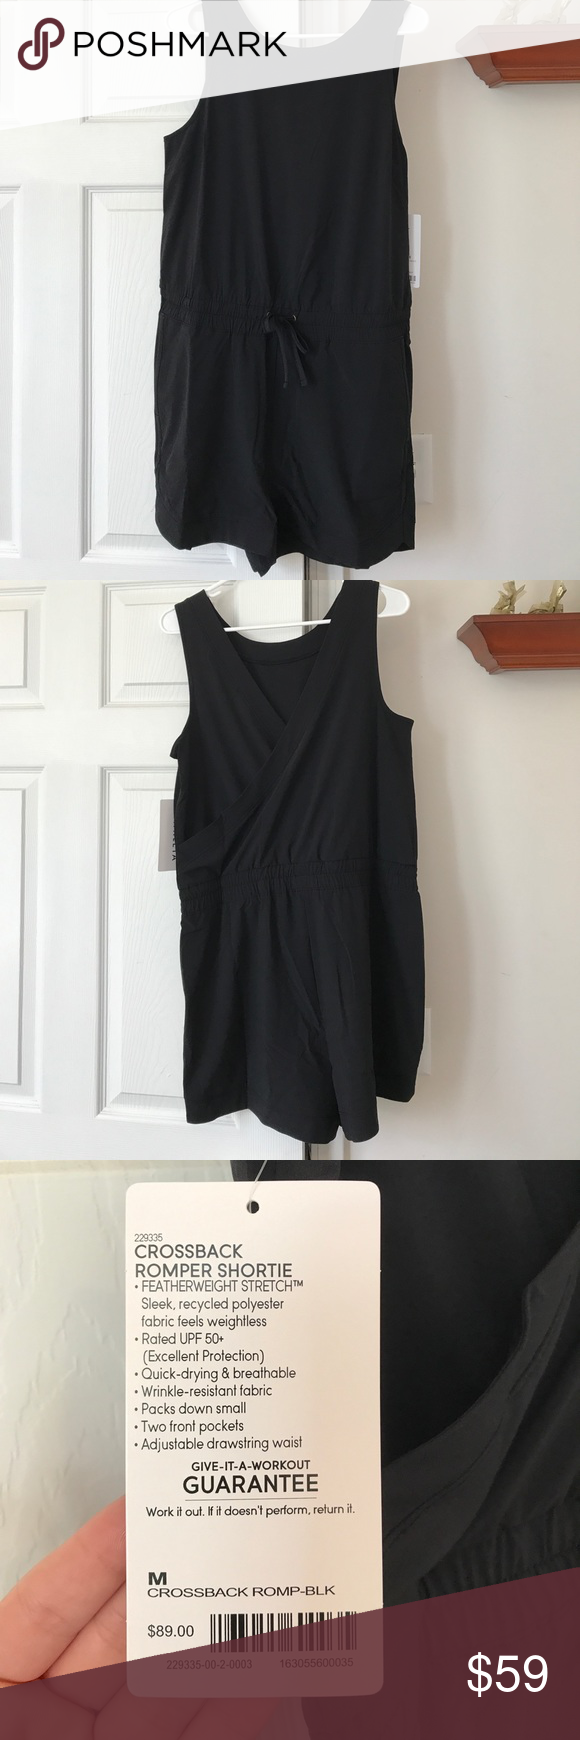 91a8a10facc7 Atheleta Crossback Romper New With Tags Size Medium Athleta Other